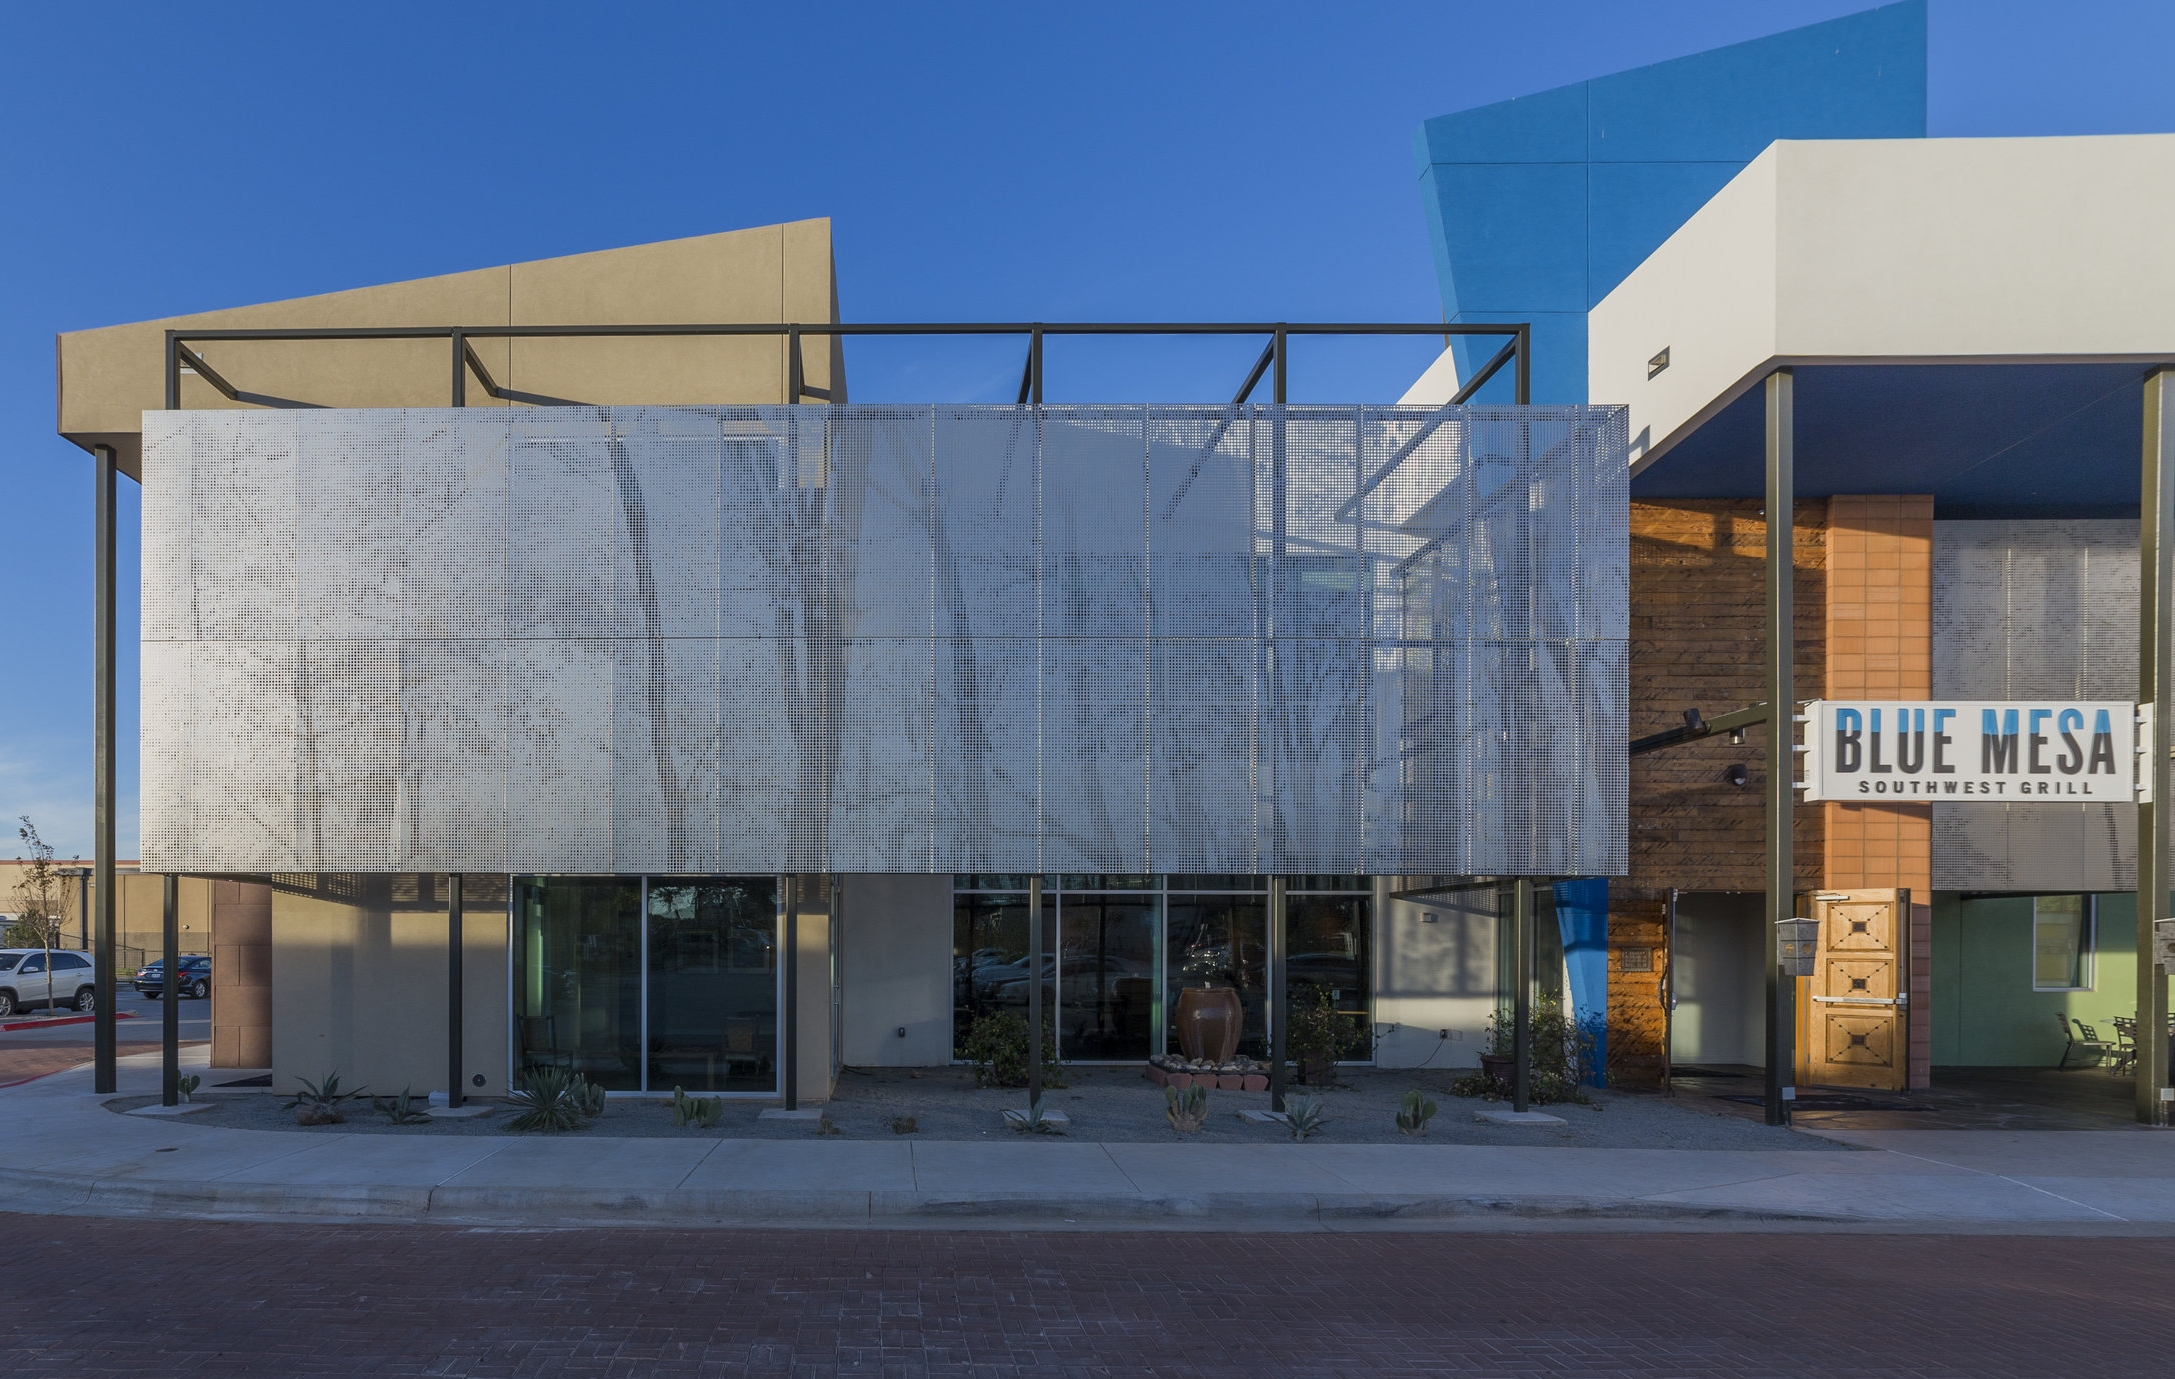 Blue Mesa Type:  Custom Facade for Commercial  Status:  Completed 2016  Client/Architect:  Blue Mesa Grill  Location:  Fort Worth, TX  Project Description forthcoming...  Mr. Manto worked as a Design Engineer on the project while working with A. Zahner Company.  Images Courtesy of Zahner.